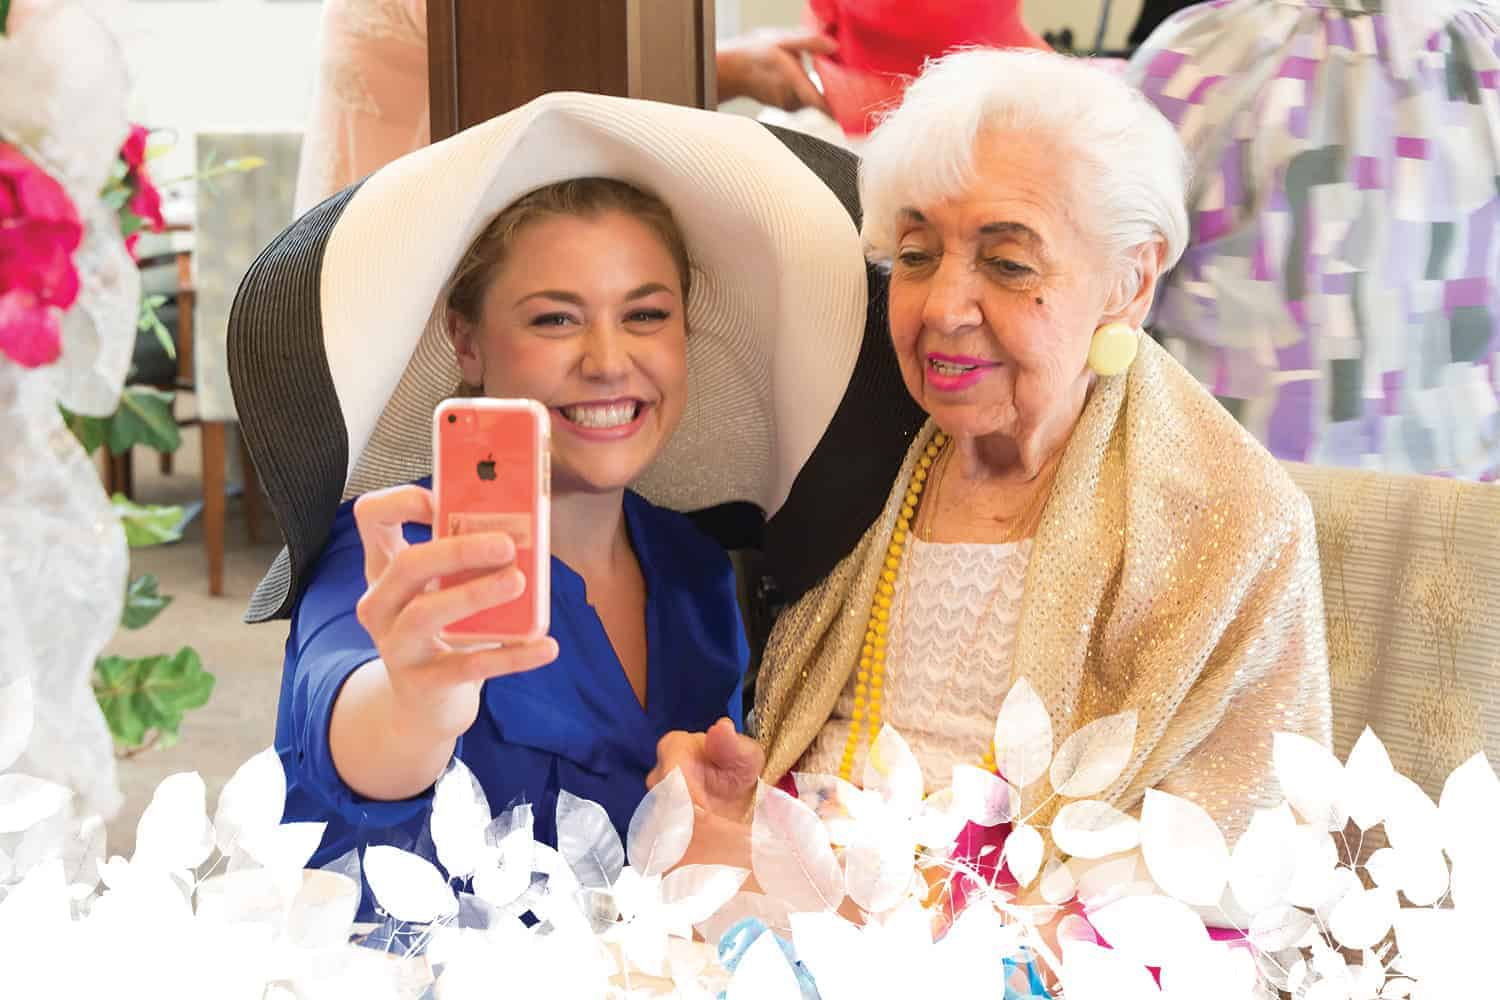 taking a selfie and other resident activities